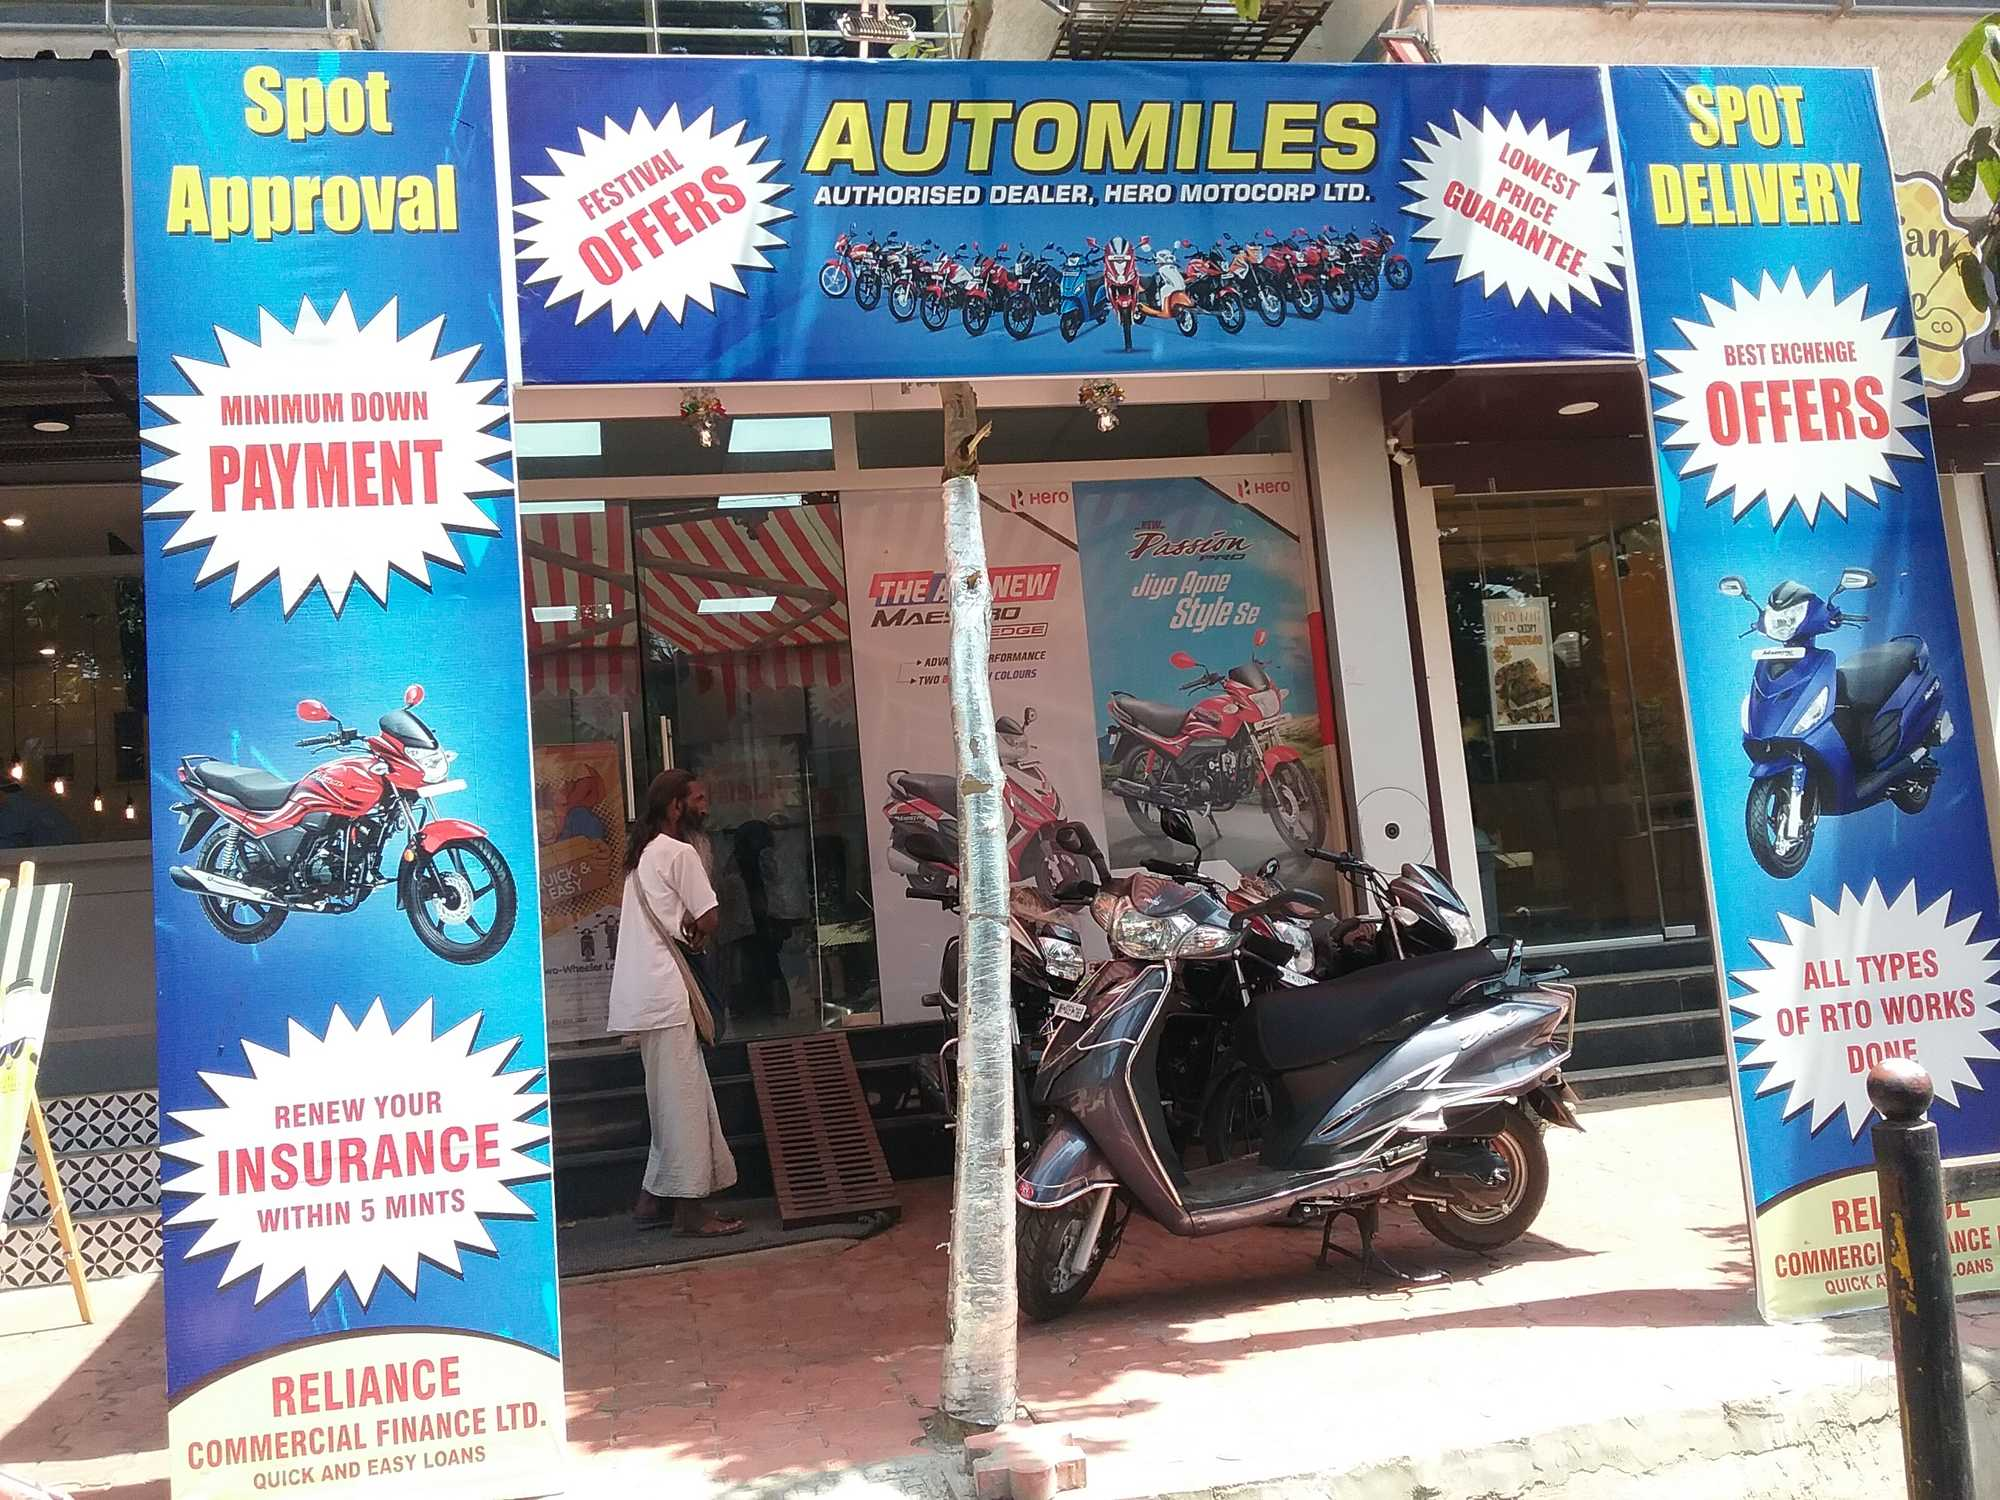 Top Kawasaki Ninja Motorcycle Dealers in Malwani Colony